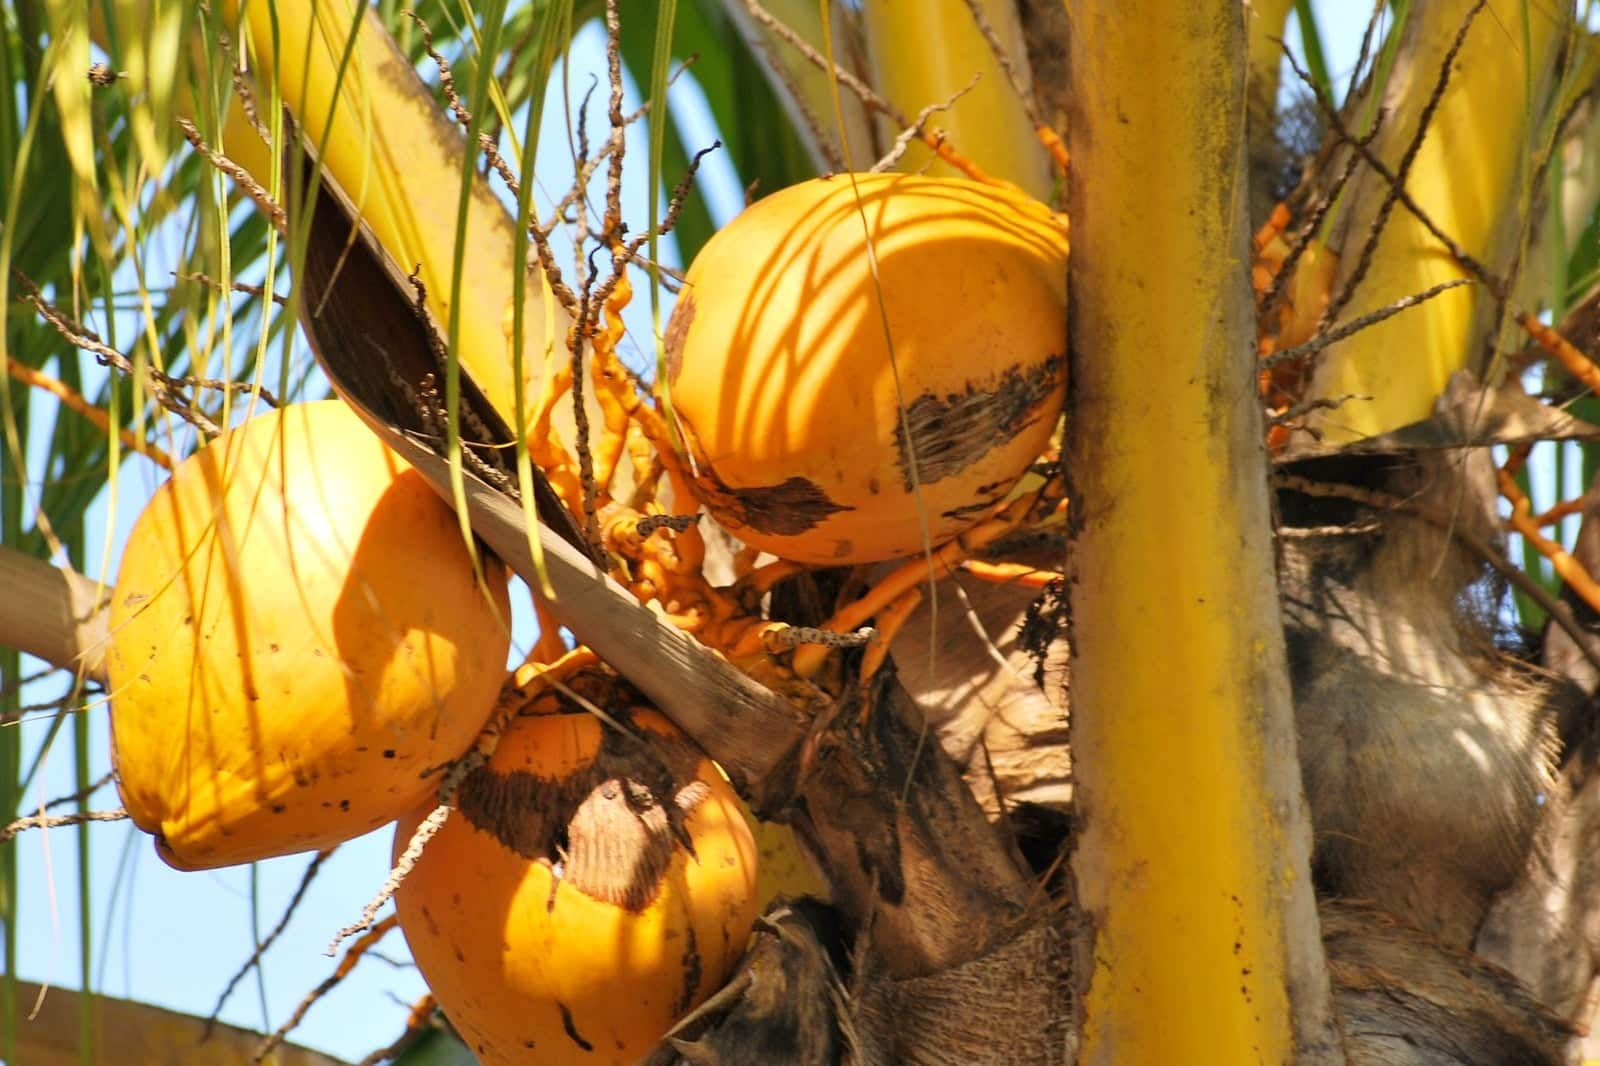 10 Best Tropical Fruits To Try In Bali Most Popular Balinese Fruits In 2020 Tropical Fruits Coconut Images Coconut